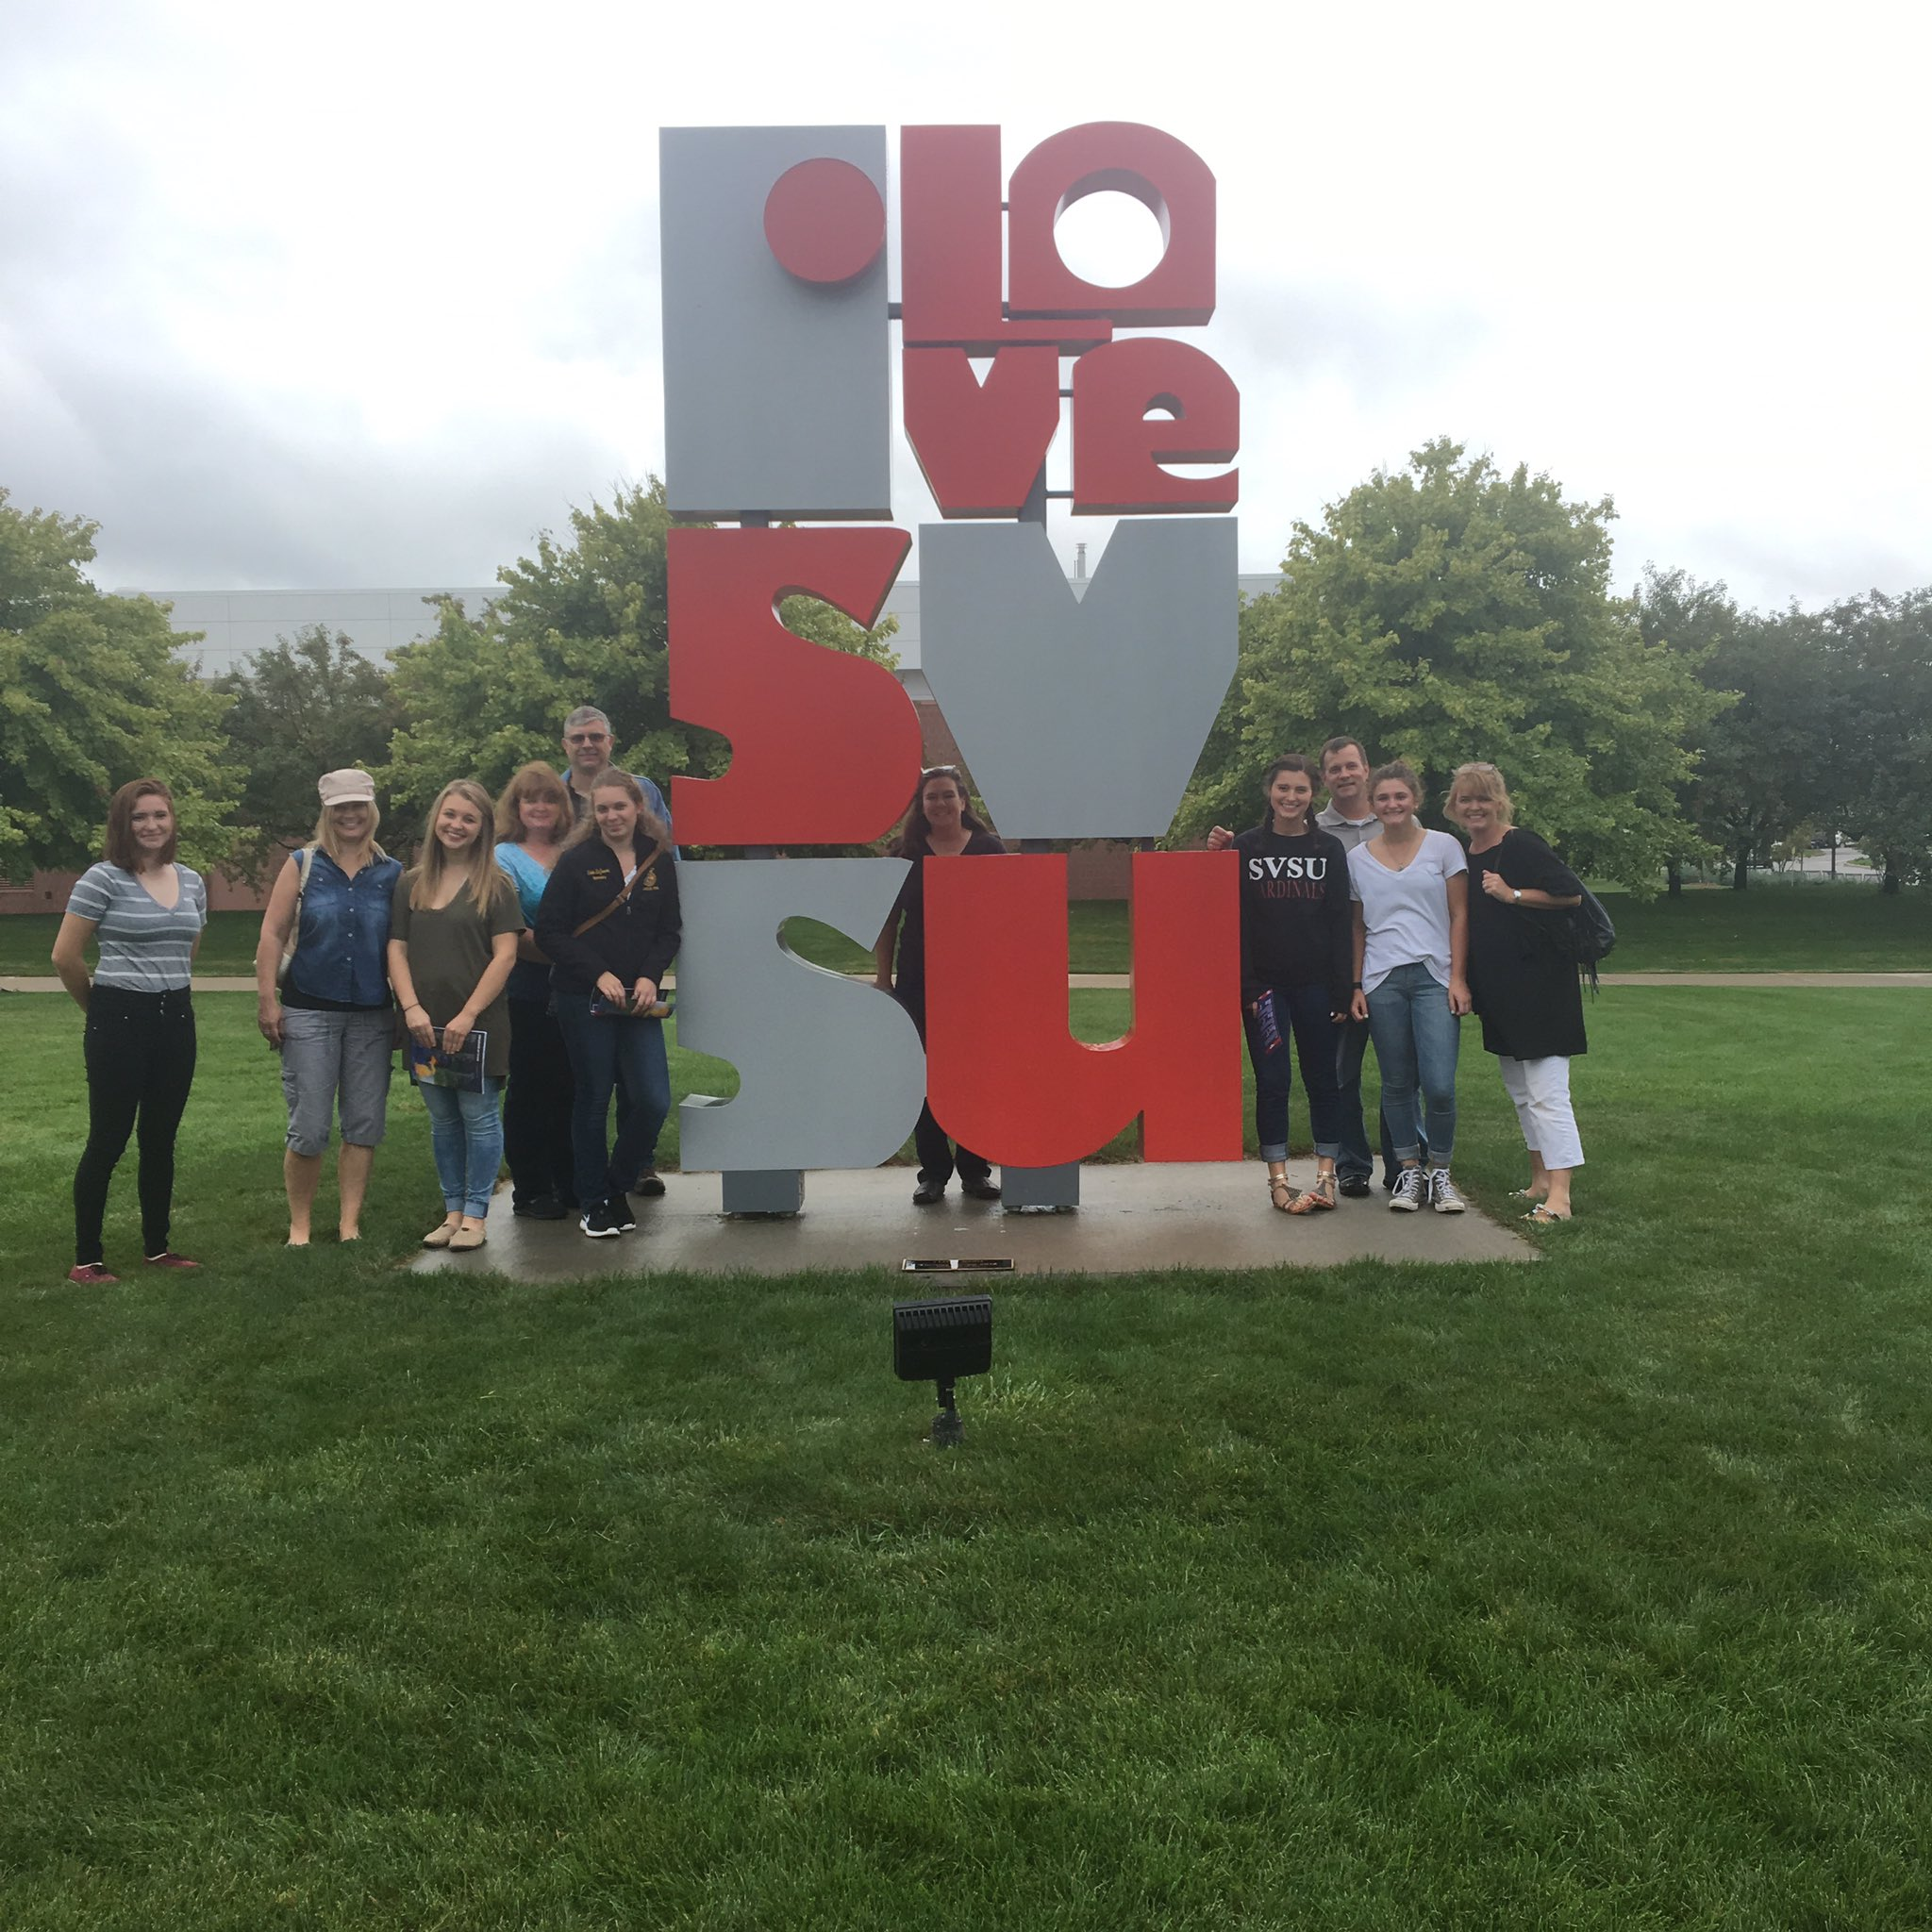 Had an AMAZING tour group of education majors for Cardinal College Day! #wecardinal https://t.co/EJ6pehnHiy